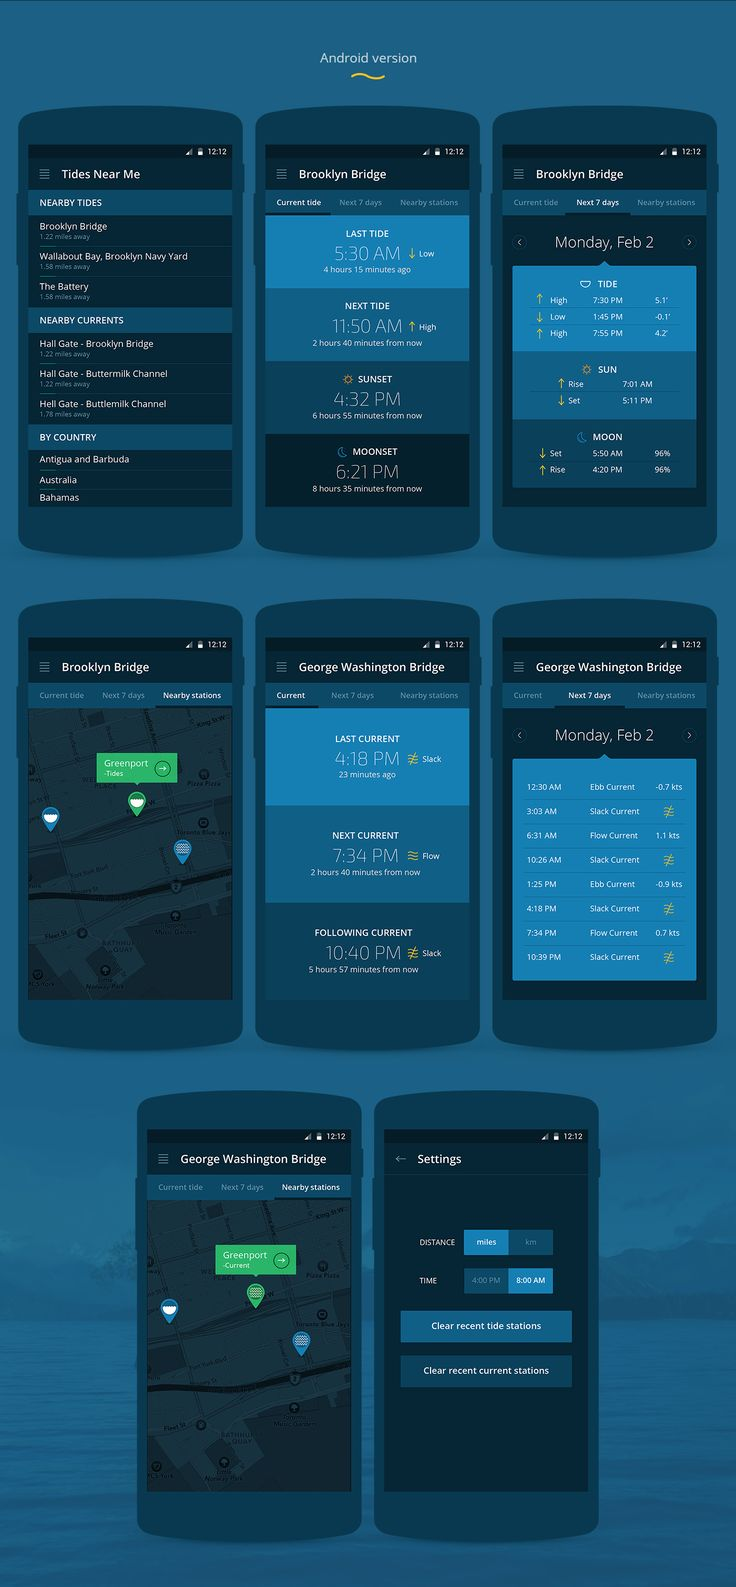 Tides Near Me   iOS & Android App on Behance